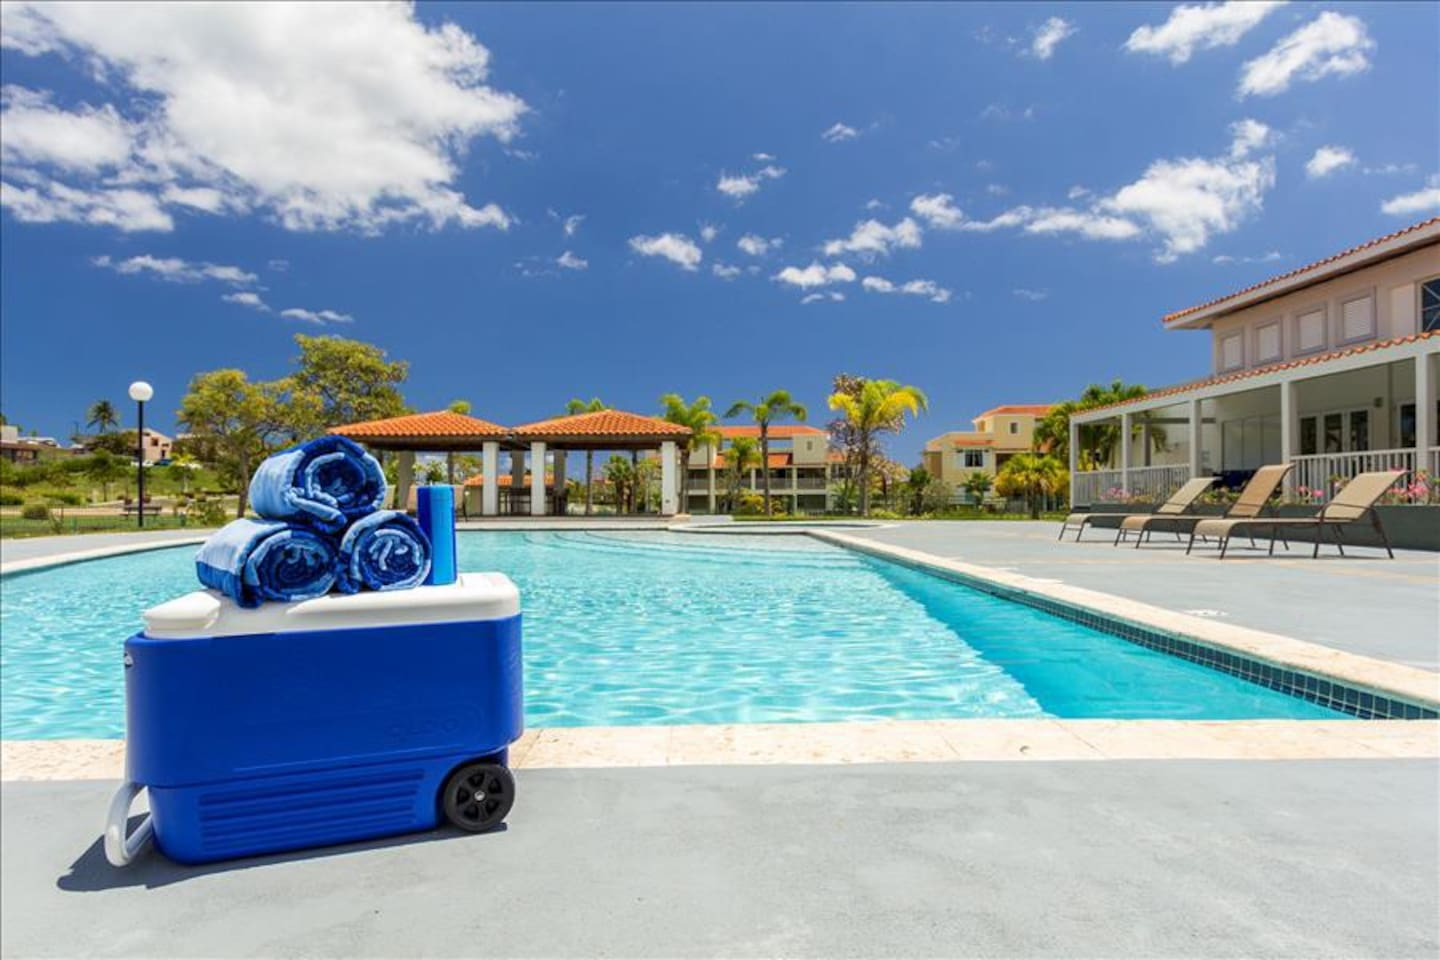 Pool, cooler, towels, and speaker included!